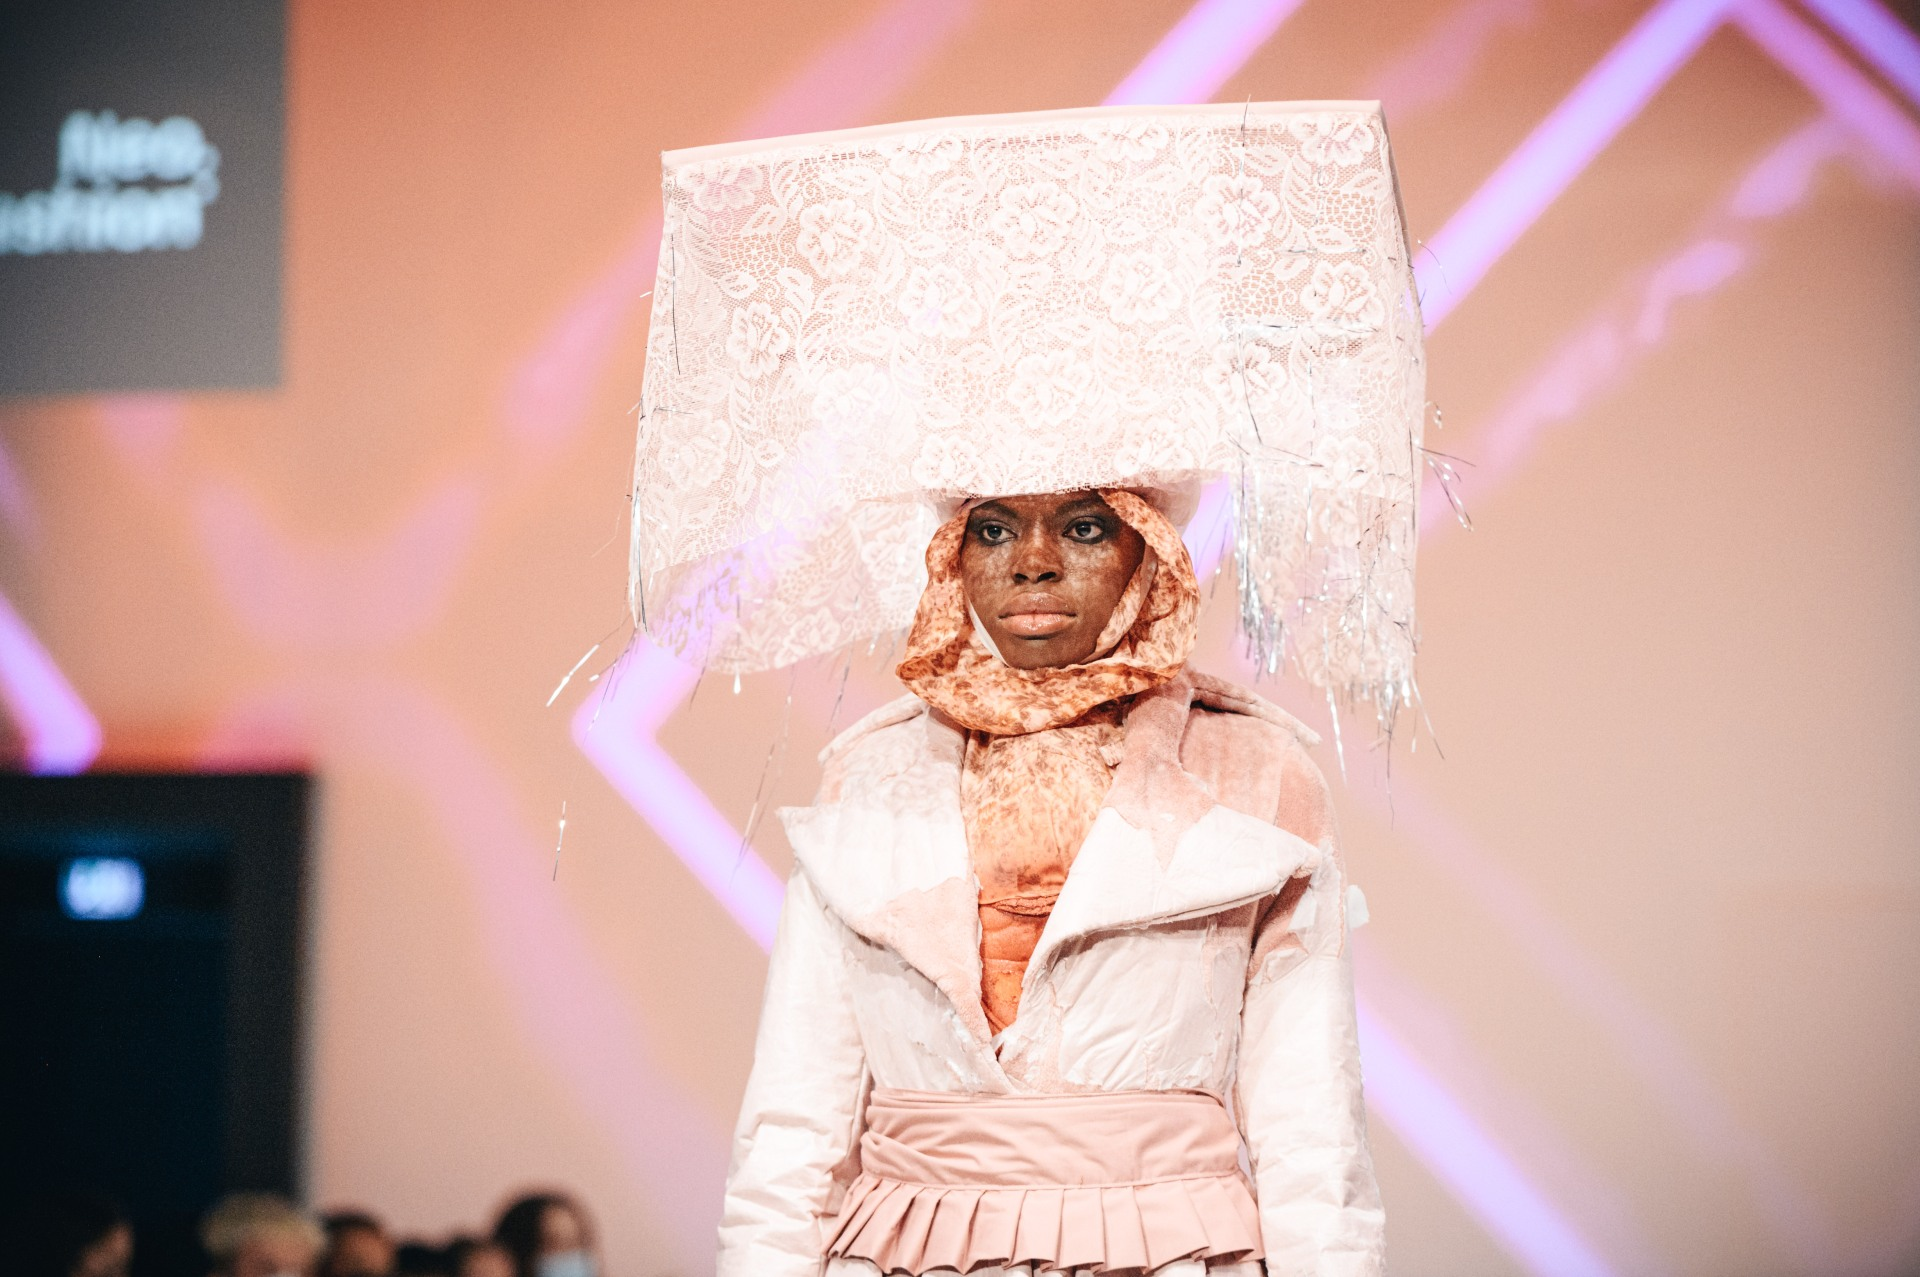 """BERLIN, GERMANY - SEPTEMBER 07: A model walks the runway during the """"Neo.Fashion. Graduate Show 7"""" of HS Pforzheim at the Mercedes-Benz Fashion Week Berlin September 2021 at Alte Muenze on September 7, 2021 in Berlin, Germany. (Photo by Robert Schlesinger/Getty Images for Neo.Fashion.)"""